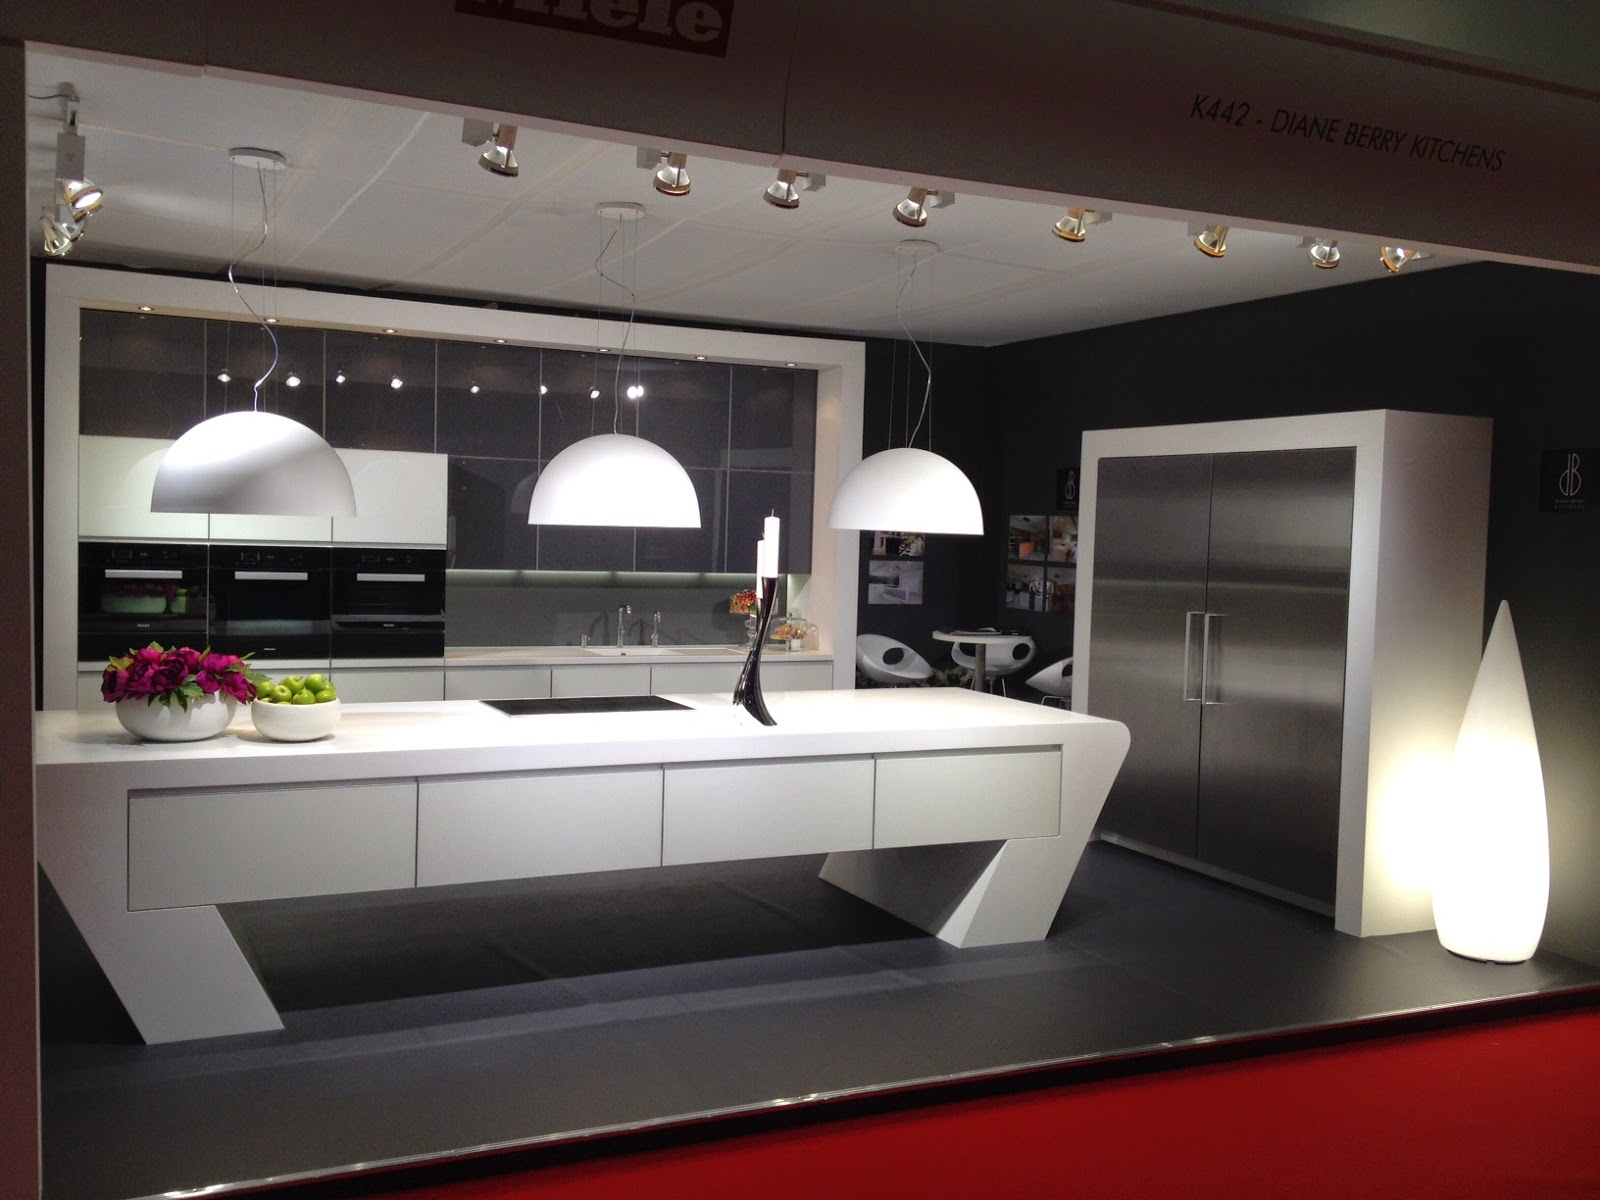 diane berry kitchens - client kitchens: grand designs live in